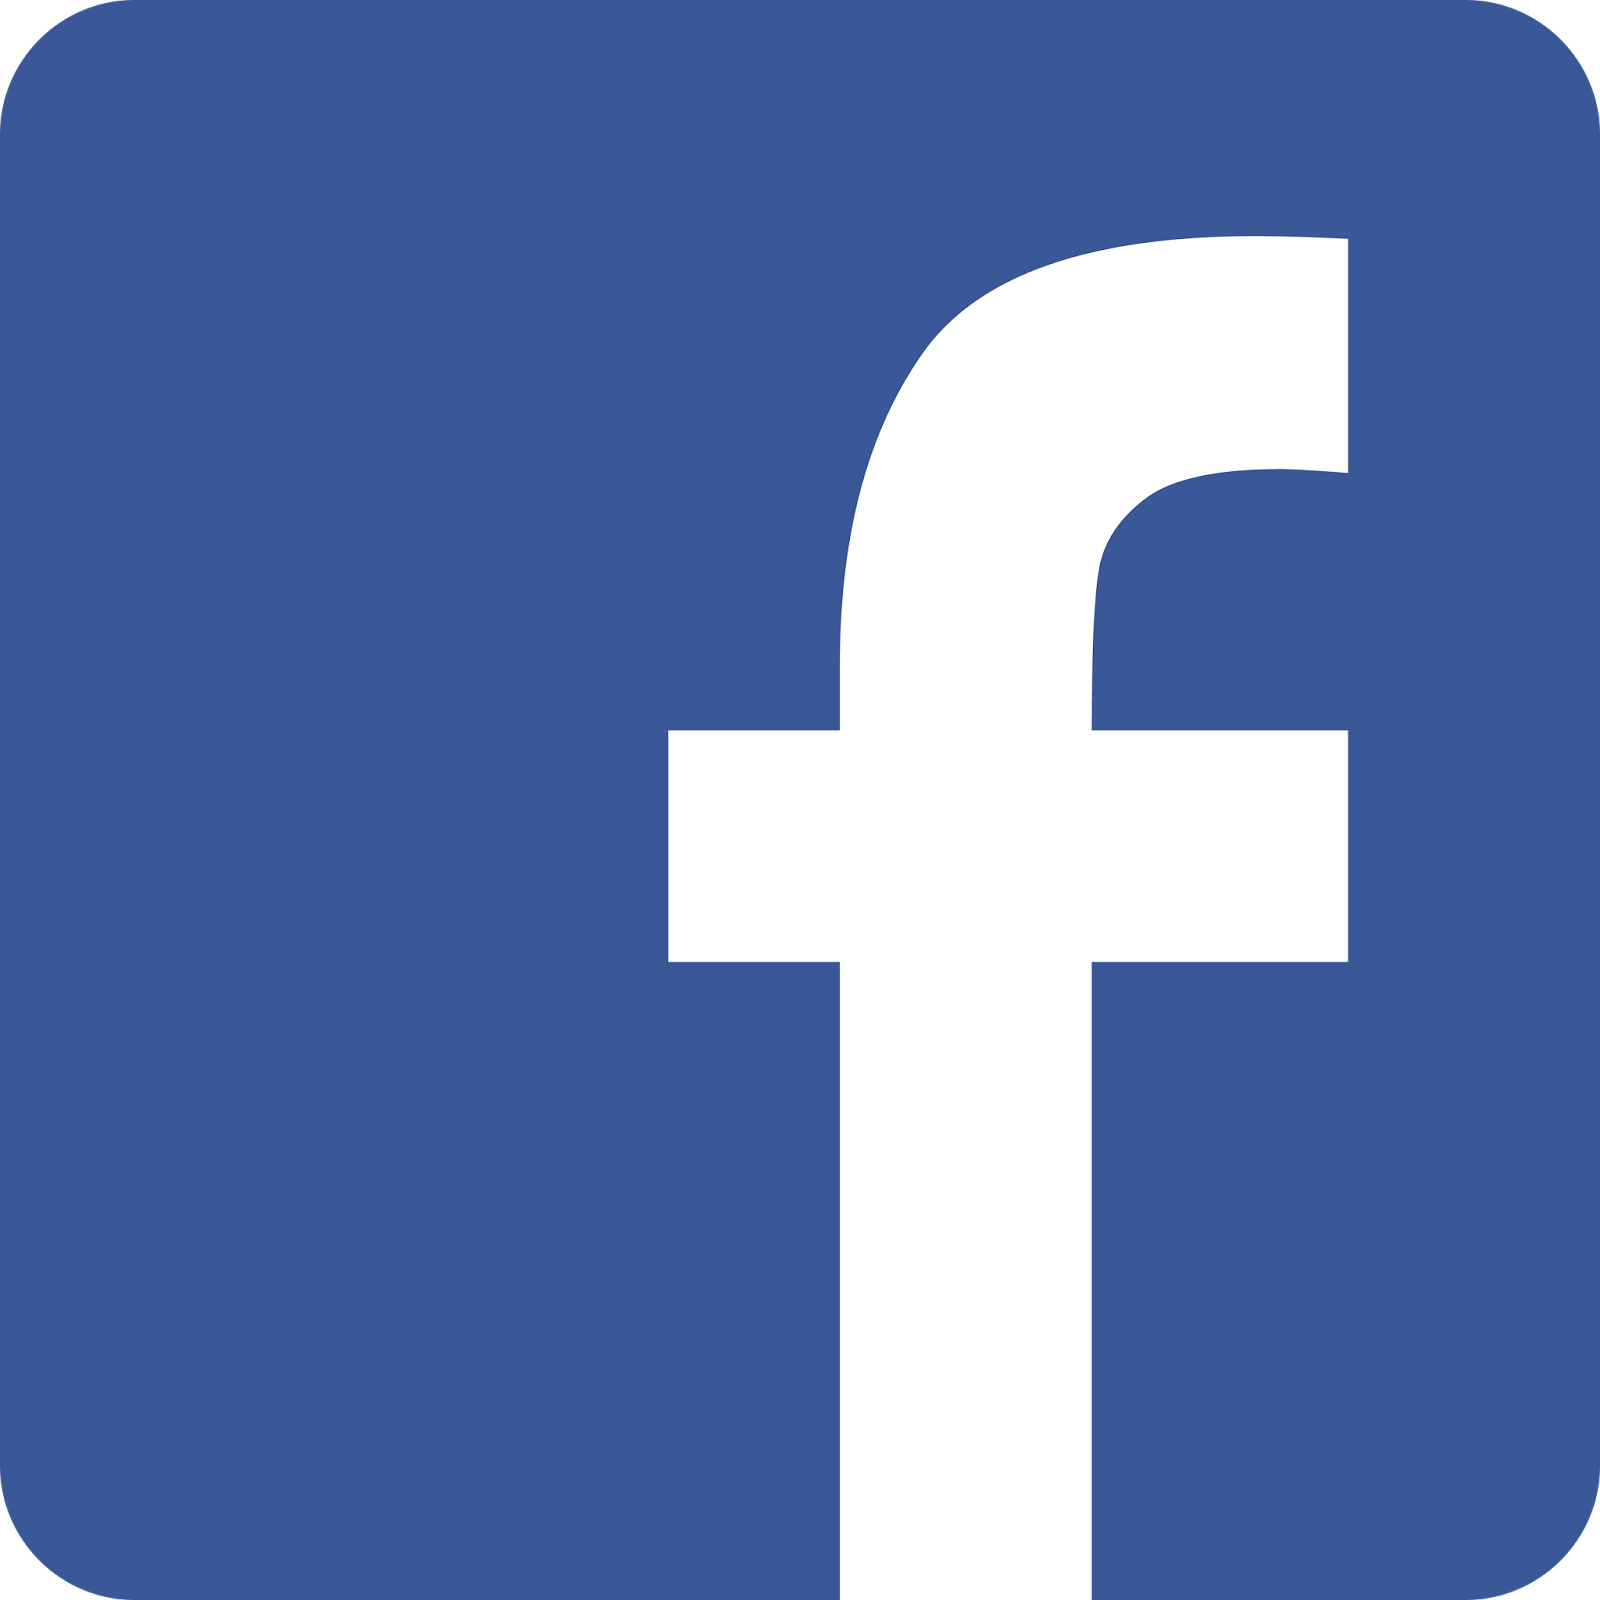 facebook-transparent-logo-png-0 - копия